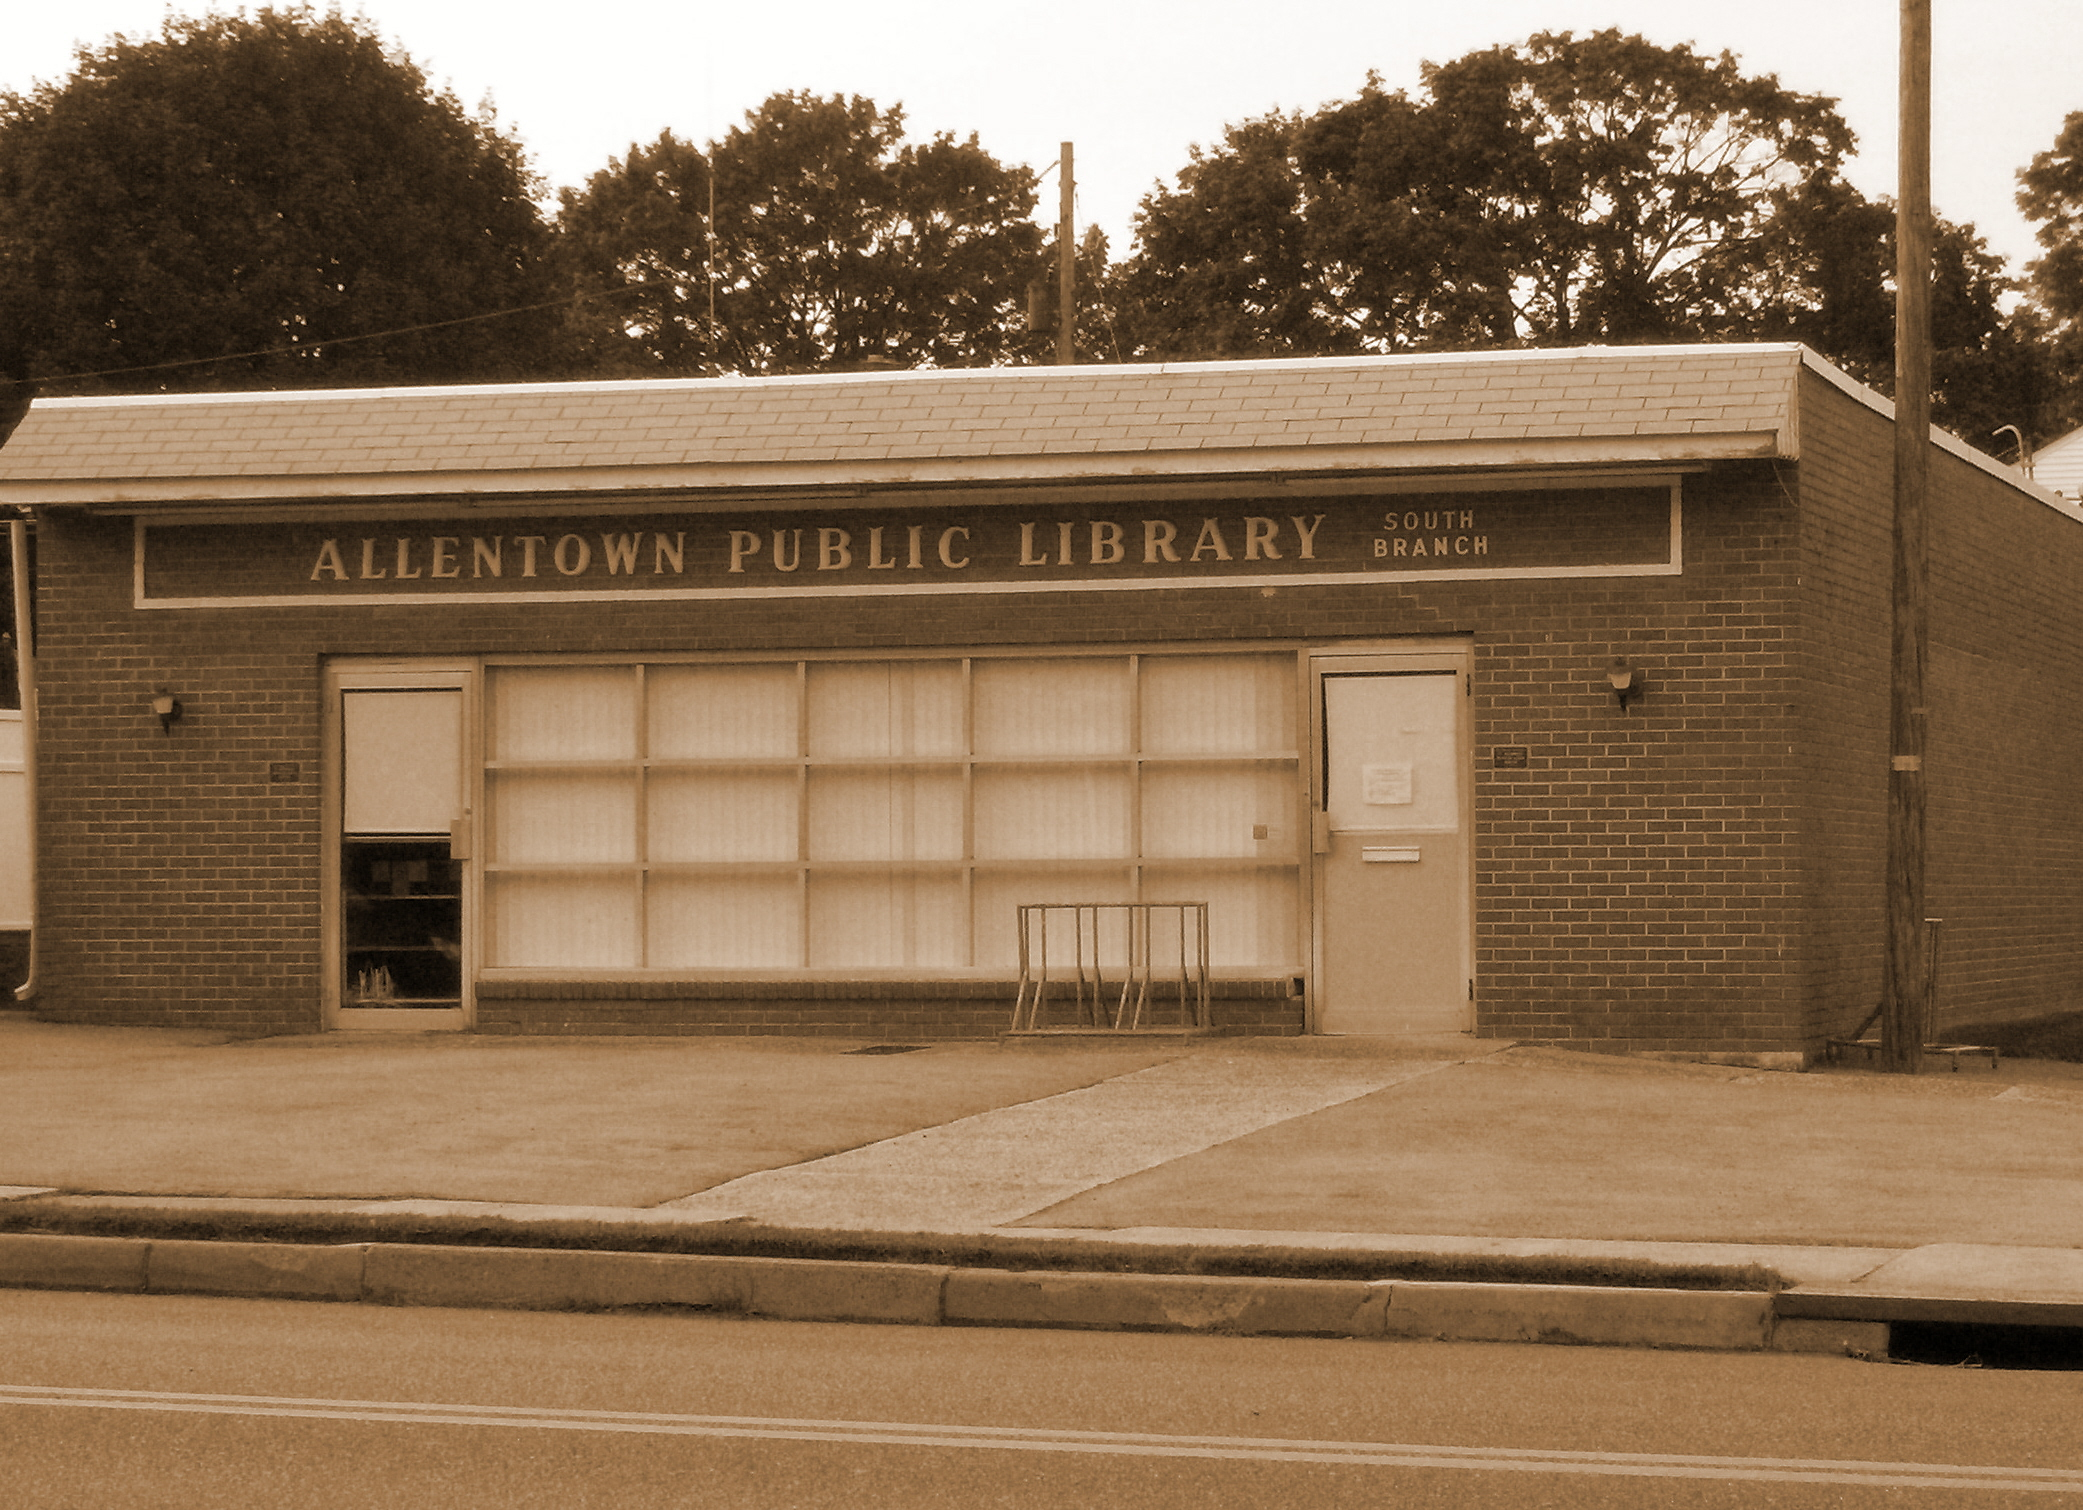 Allentown Public Library - South Branch, located at 6th St & W. Emaus Ave, Allentown, PA